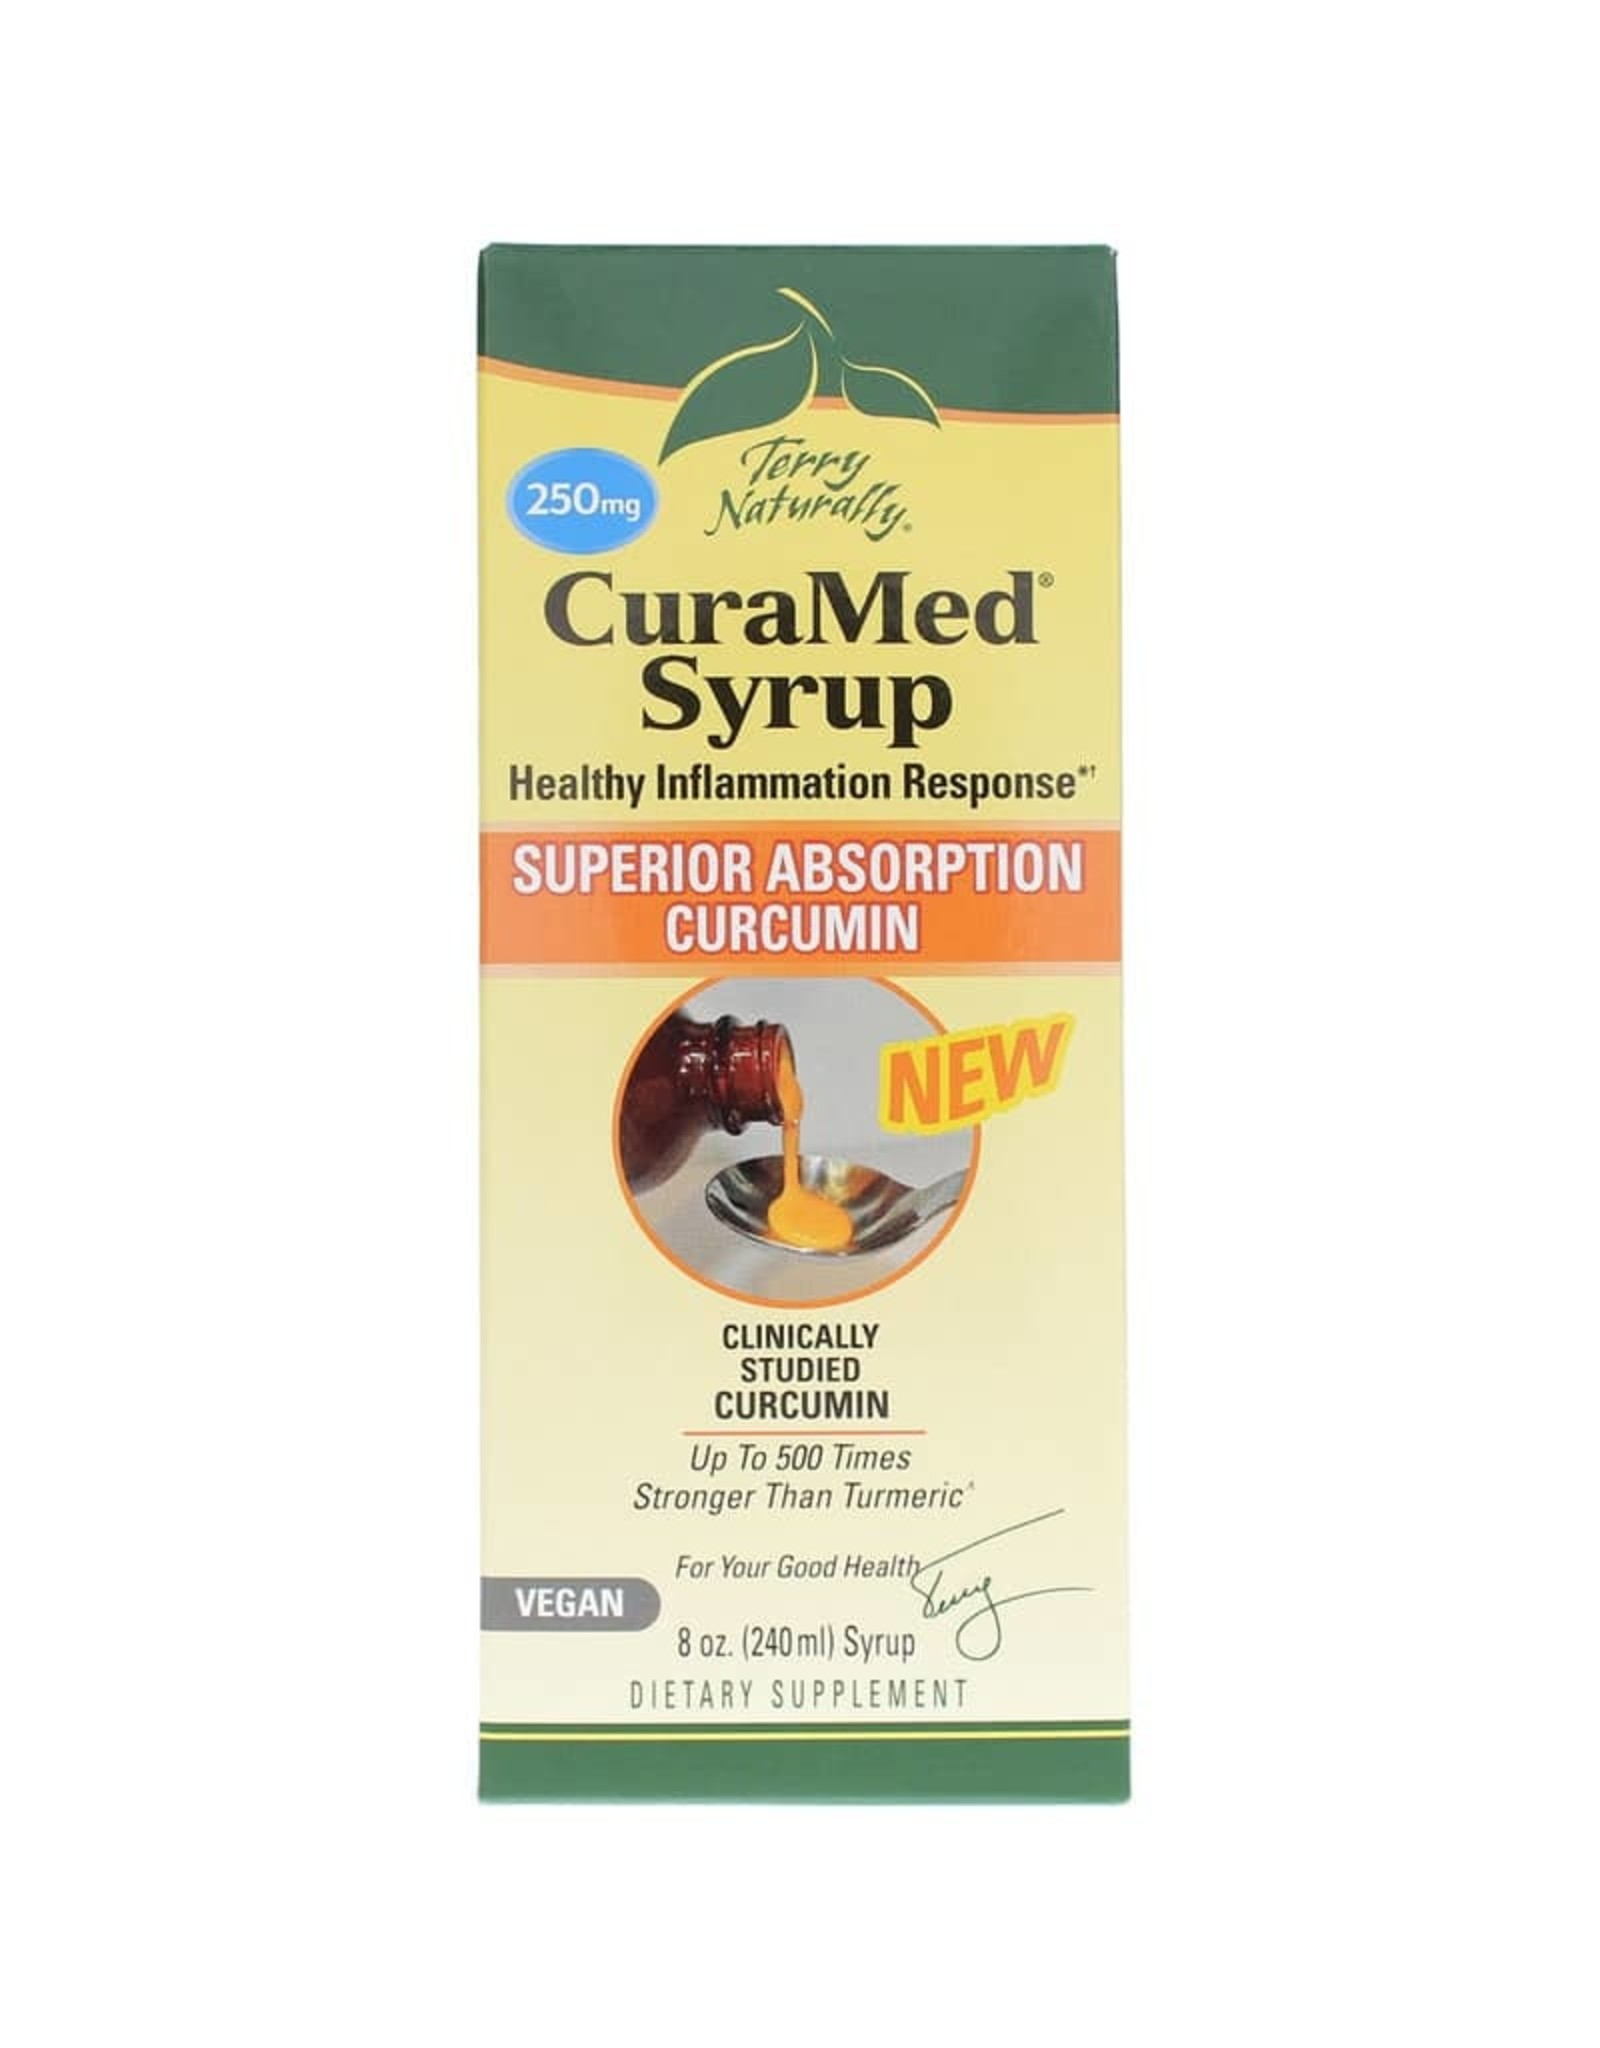 Terry Naturally CuraMed Syrup 250mg 8oz